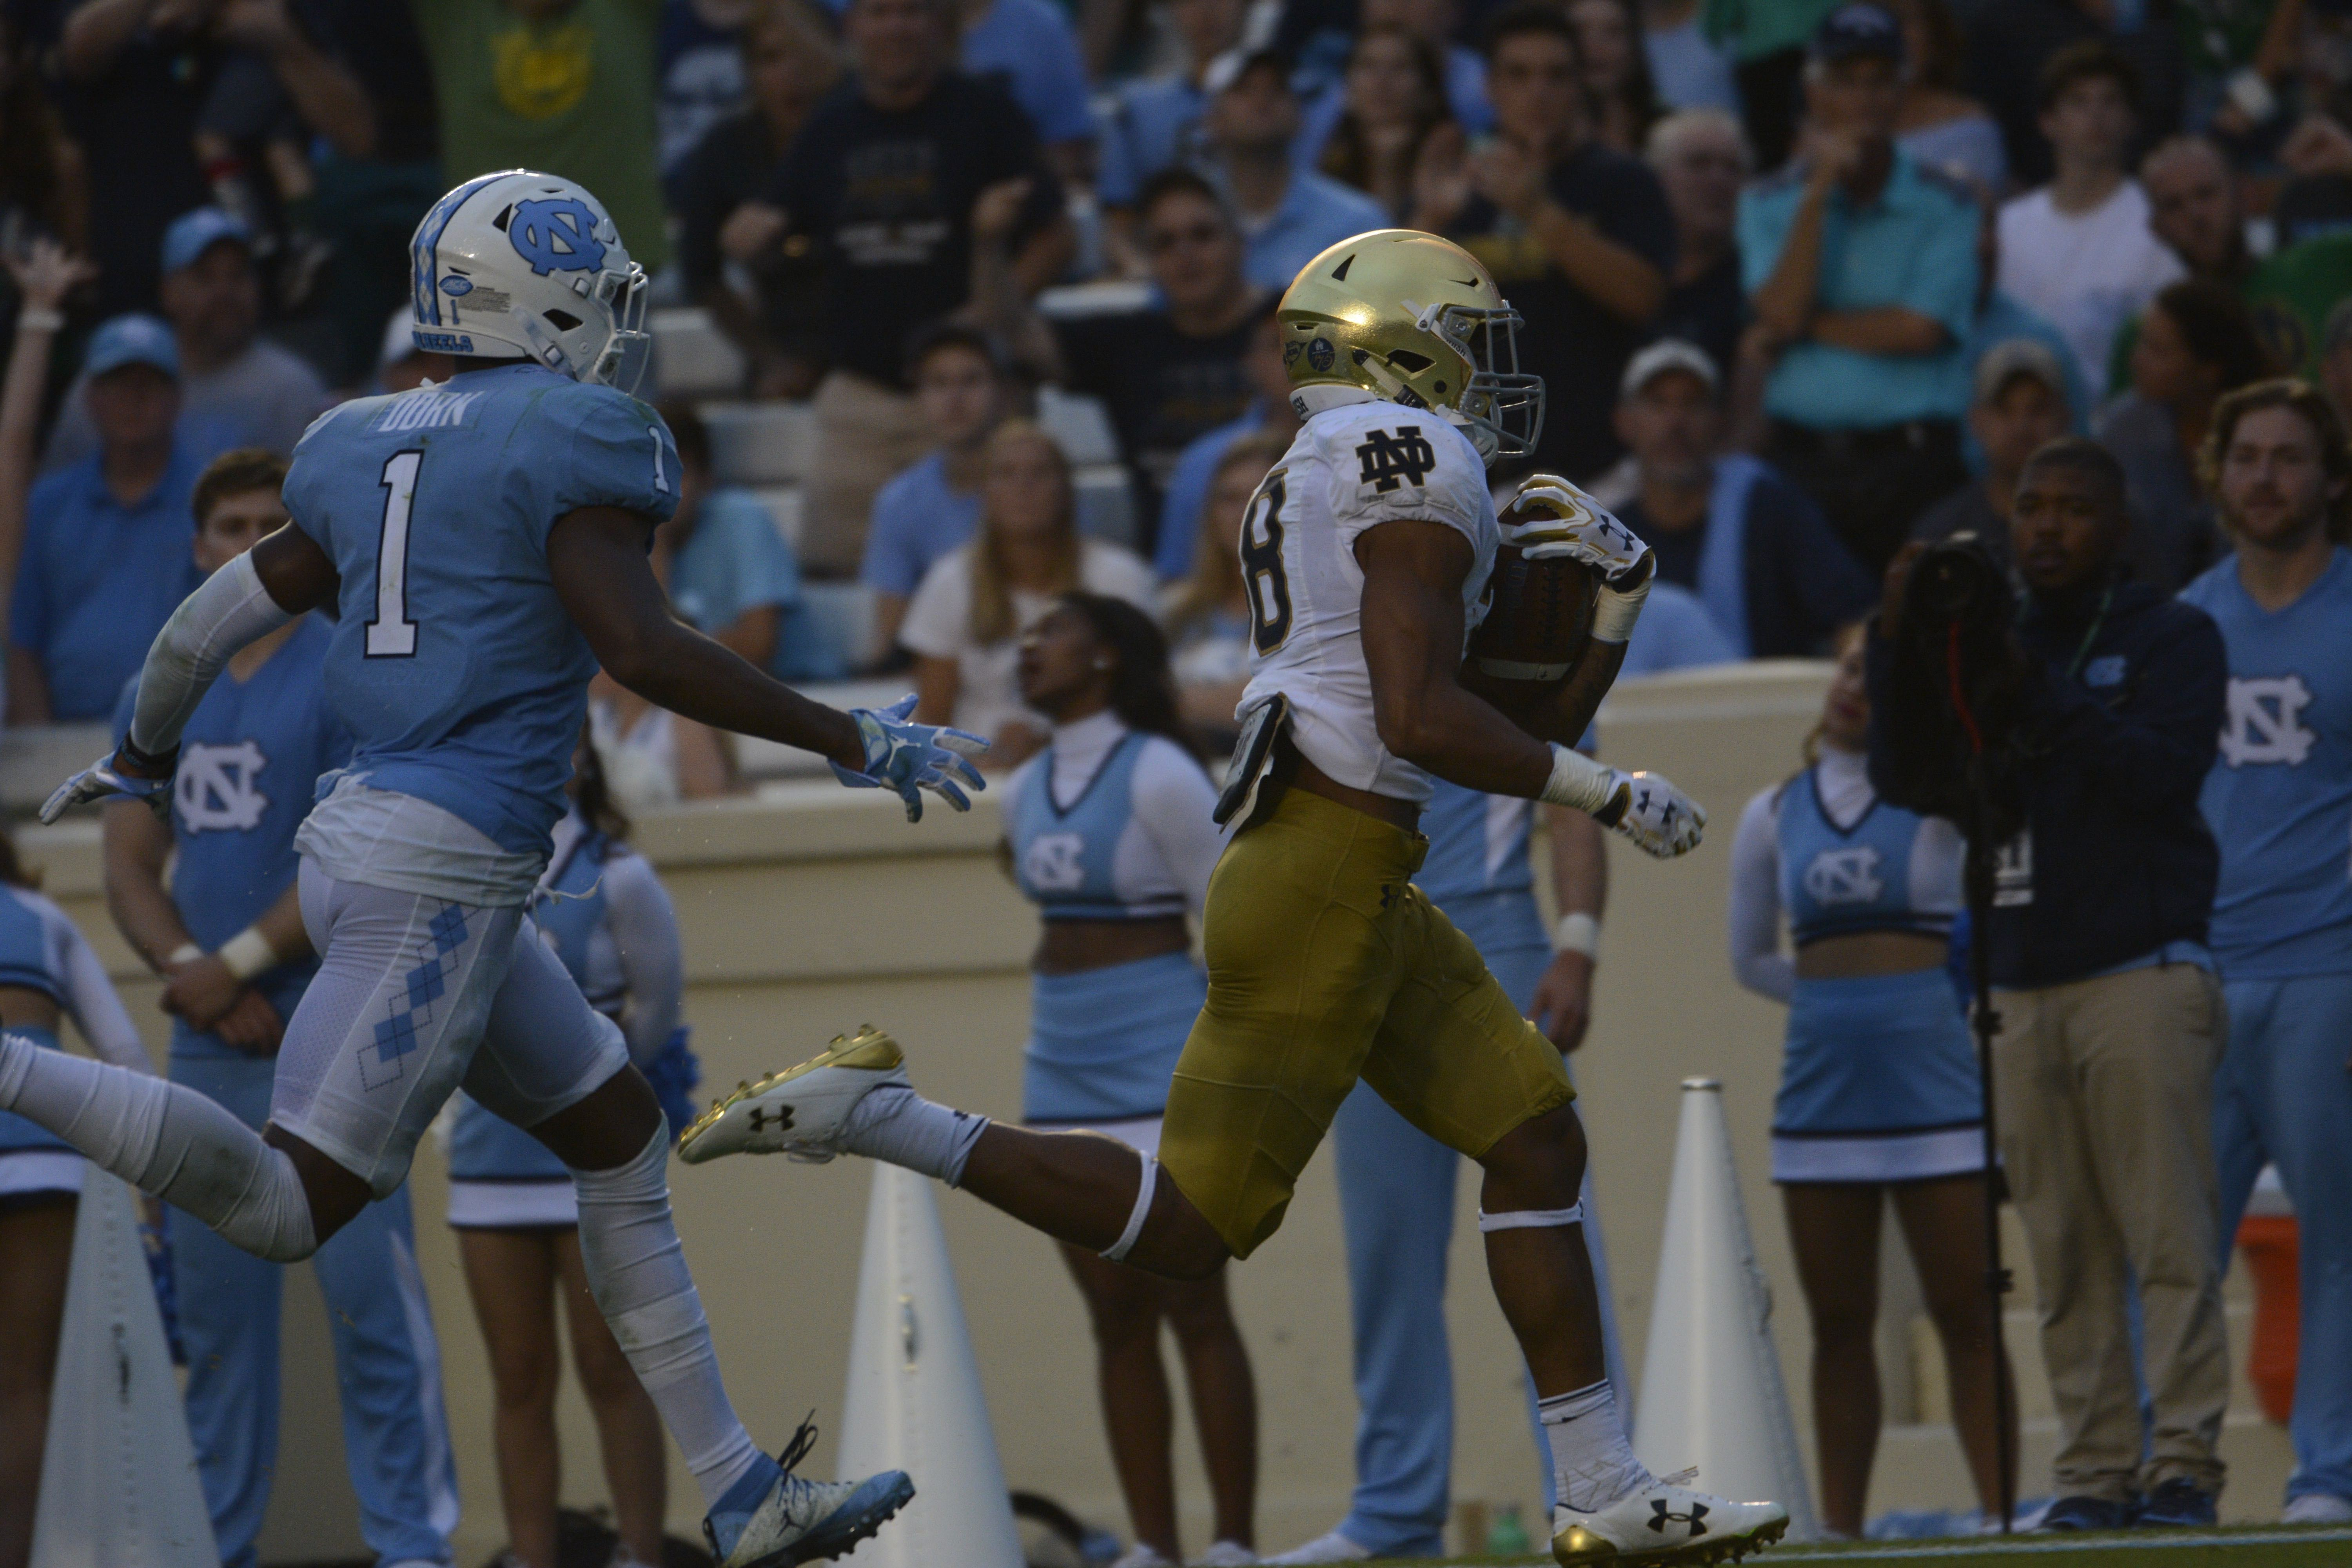 Irish sophomore running back Deon McIntosh outpaces a defender during Notre Dame's 33-10 win over North Carolina on Saturday at Kenan Memorial Stadium in Chapel Hill, North Carolina.